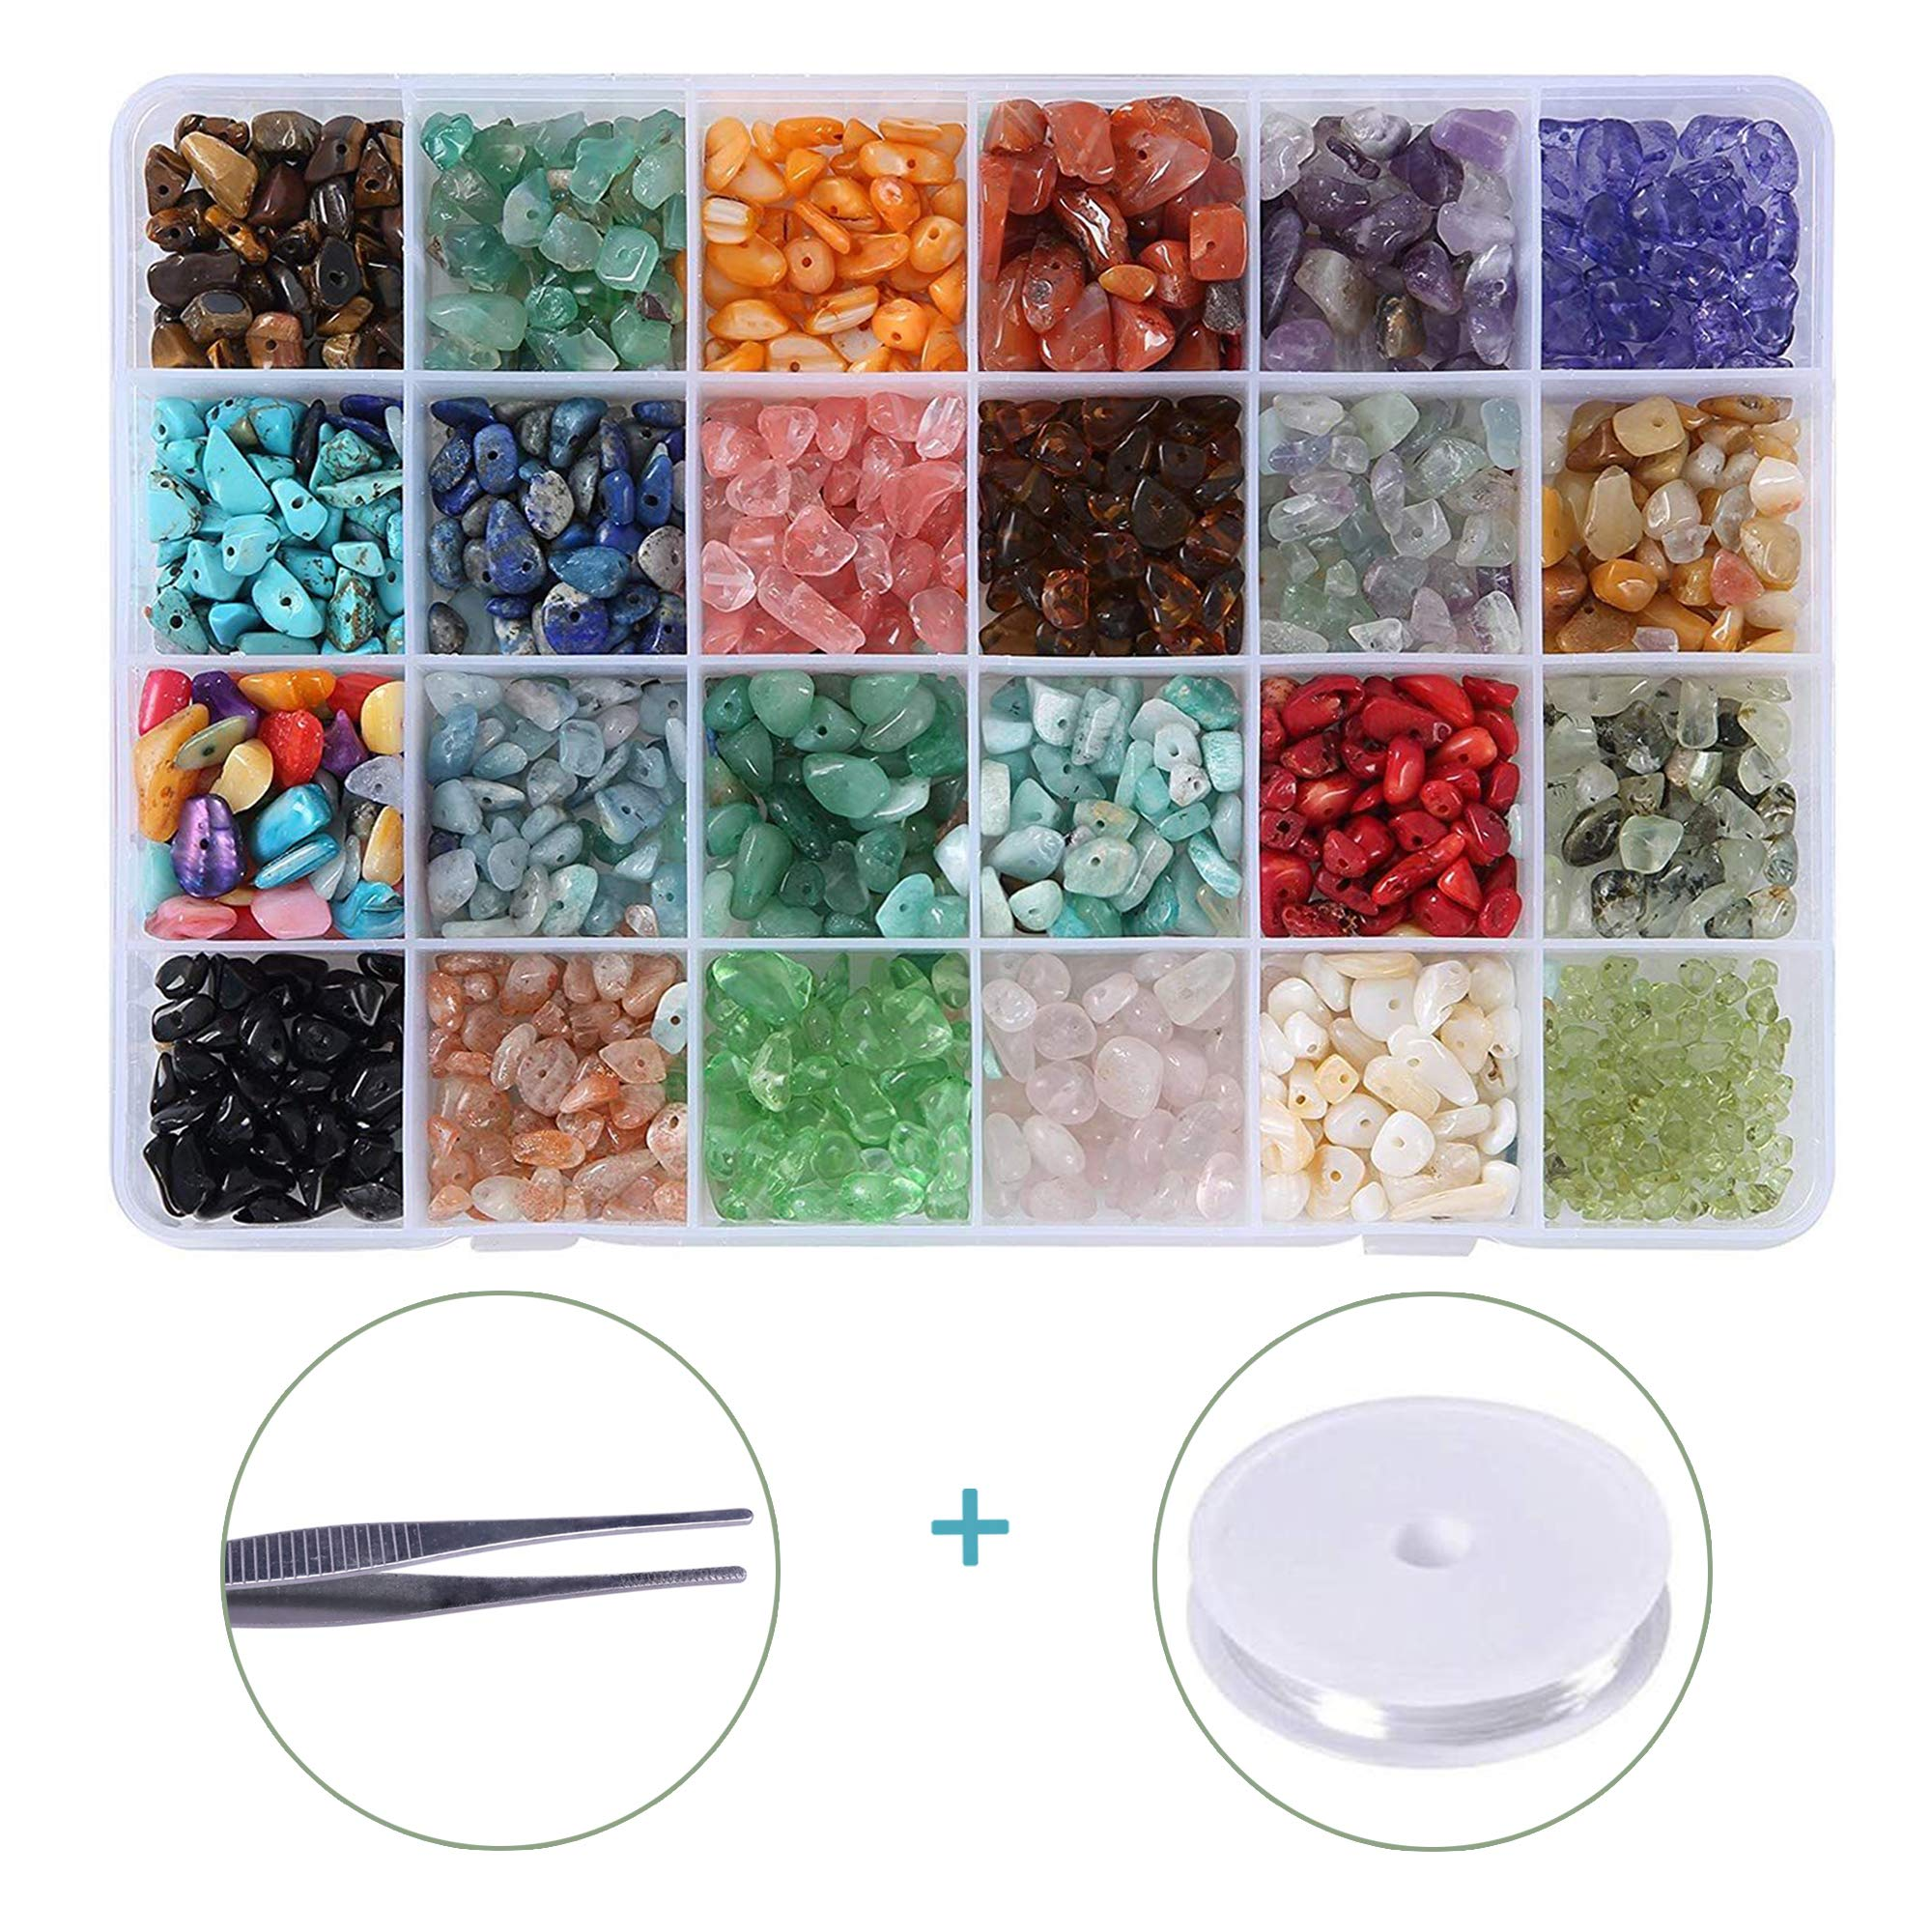 Efivs Arts 24 Stone Beads Natural Gemstone Beads Irregular Chips Stones Crushed Chunked Crystal Pieces Loose Beads for Jewelry Making by Efivs Arts